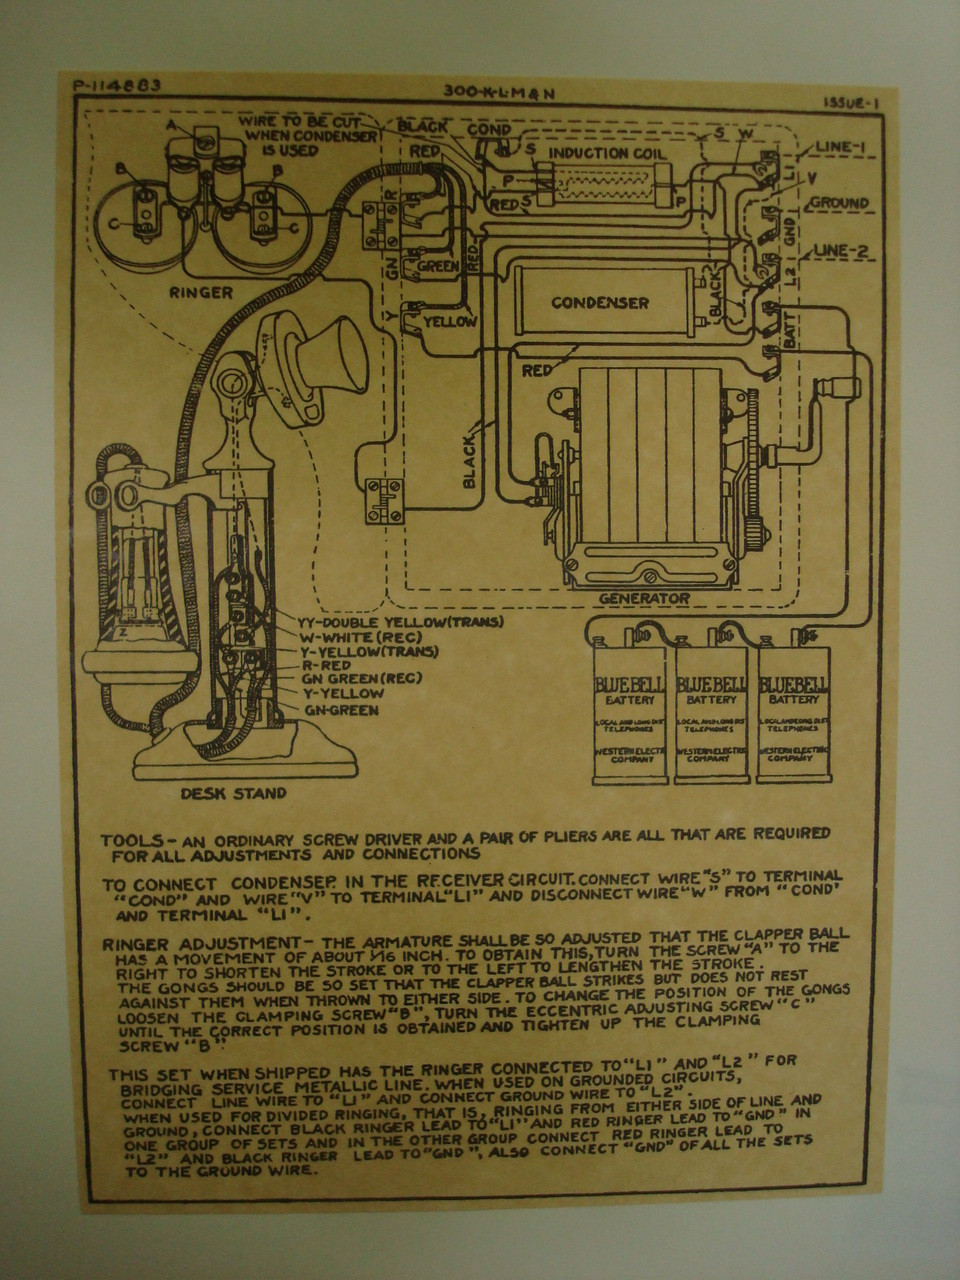 wooden magneto box and candlestick wiring diagram glue on old Phone Cable Wiring Diagram